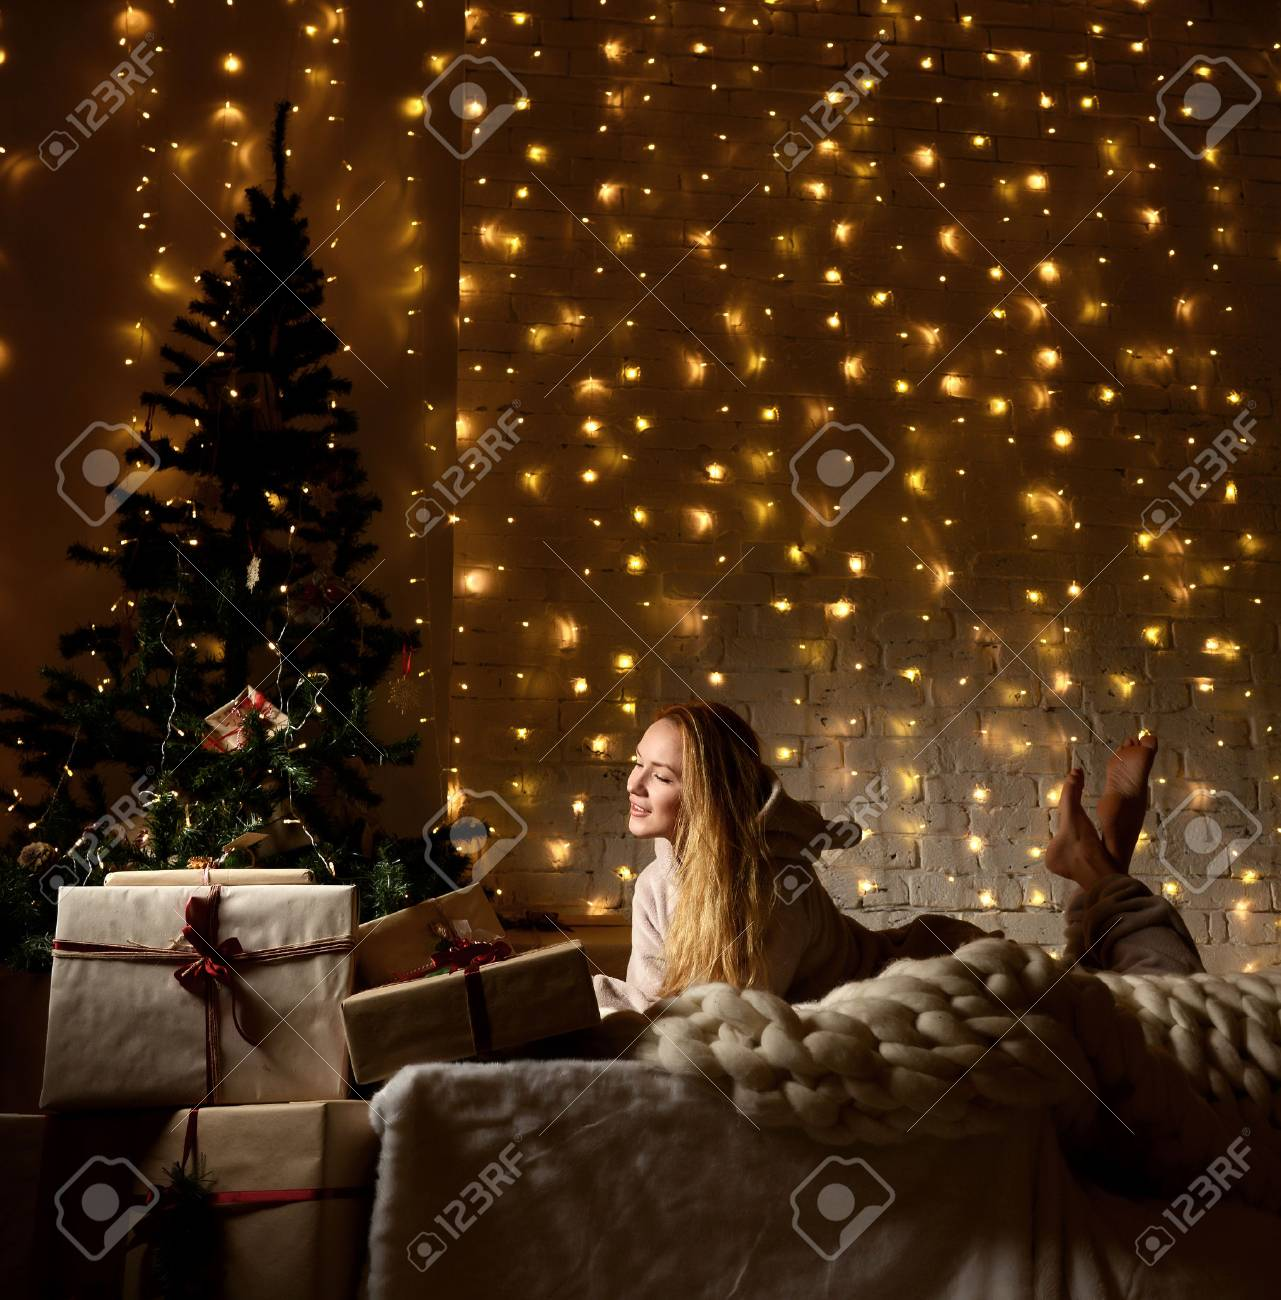 stock photo young woman lying dreaming near magical new year gifts by a christmas tree in cozy living room in winter on yellow magic light background